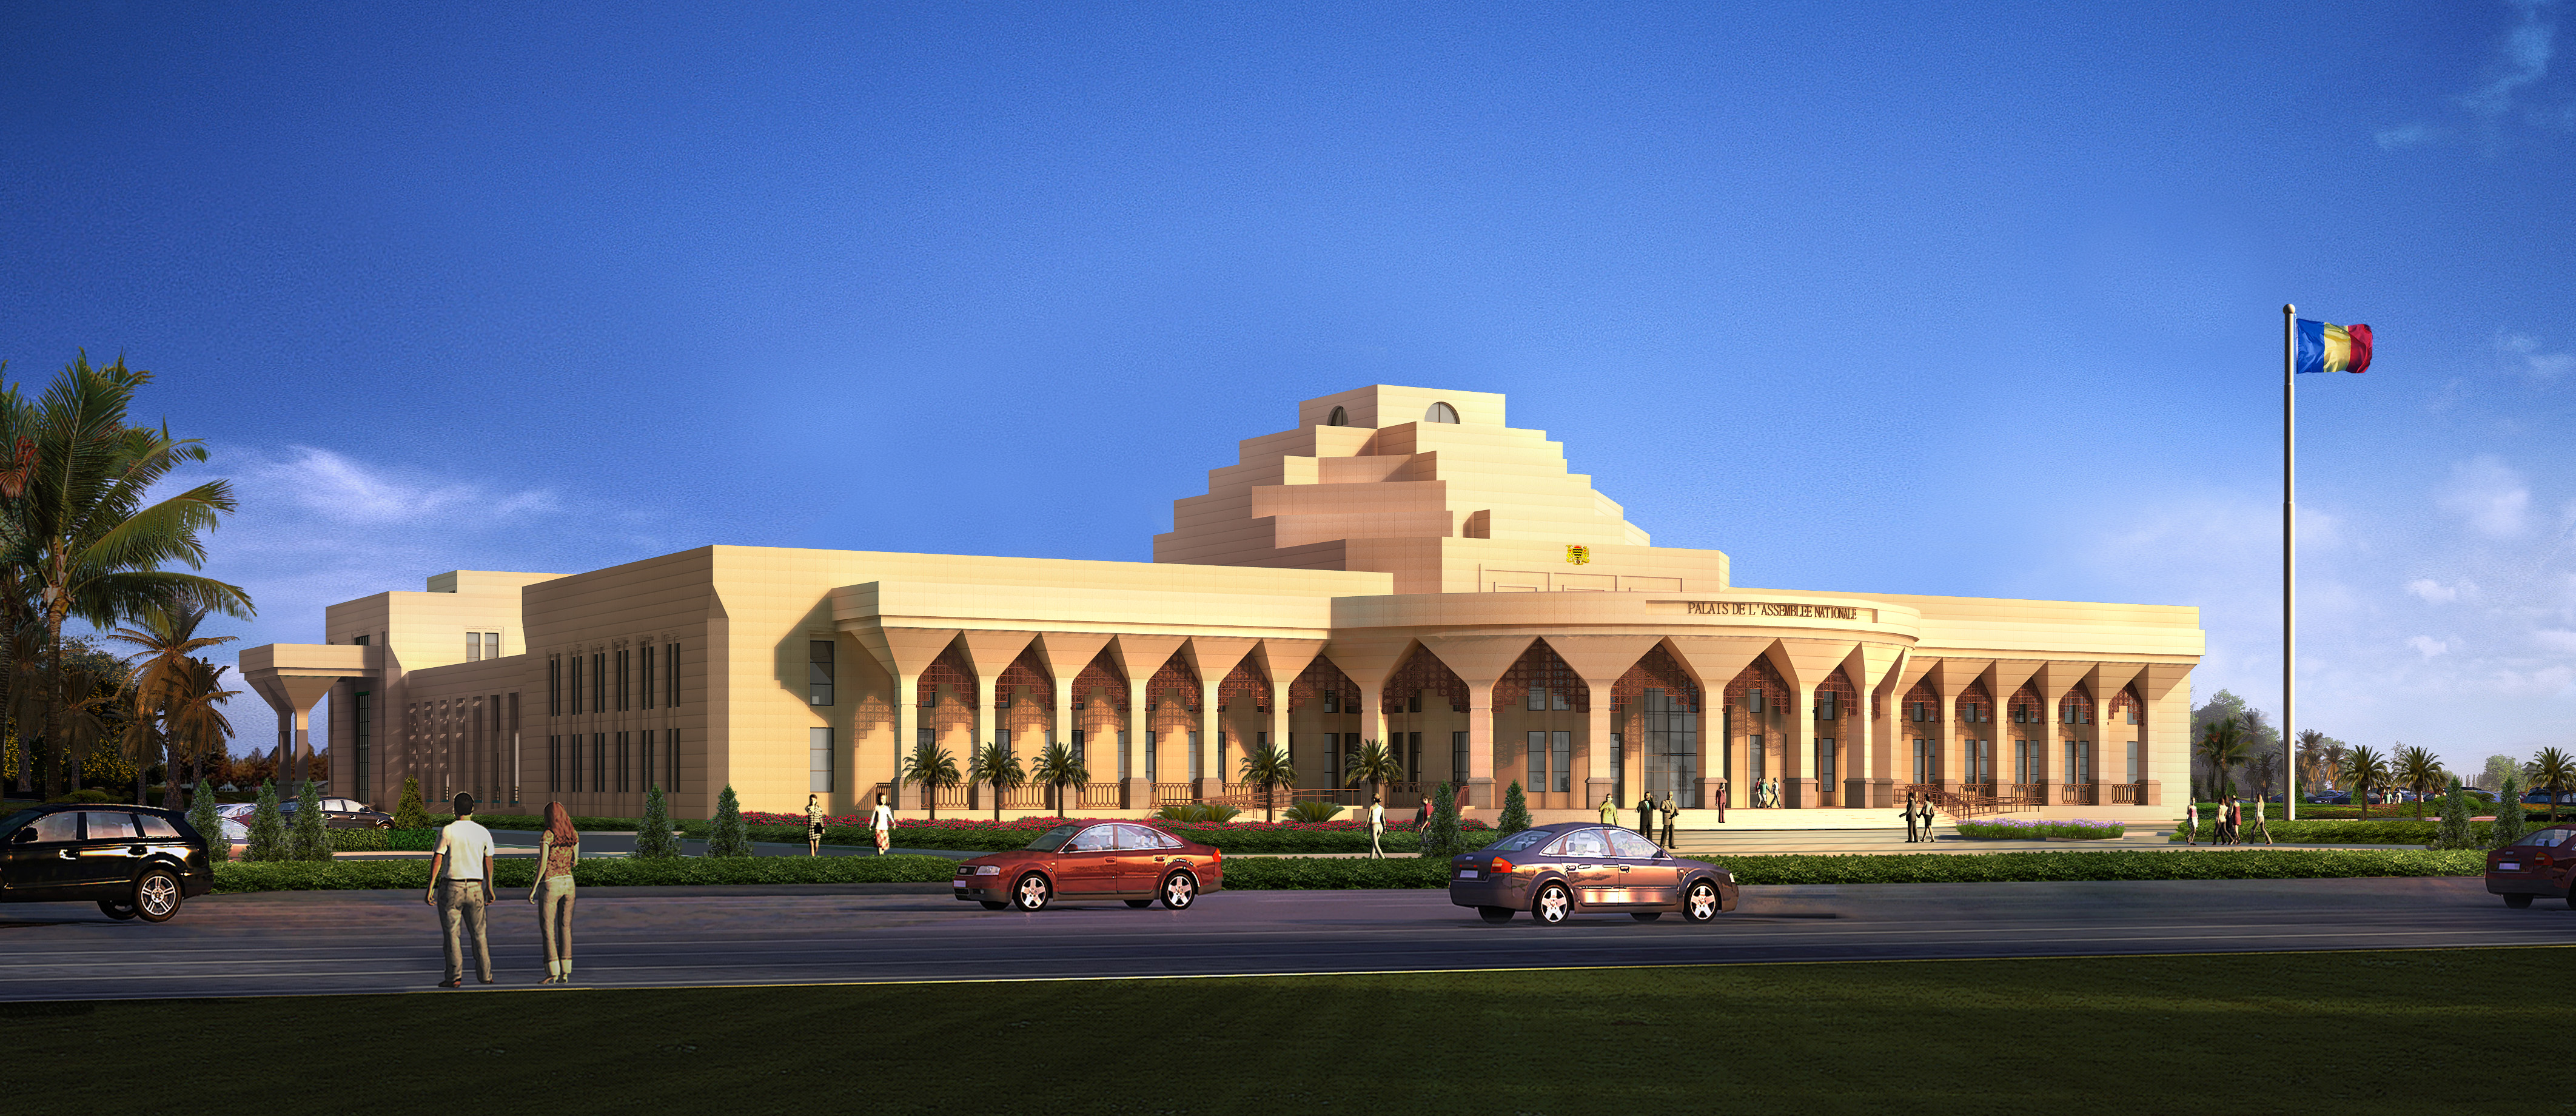 Chad Parliament Building renderings